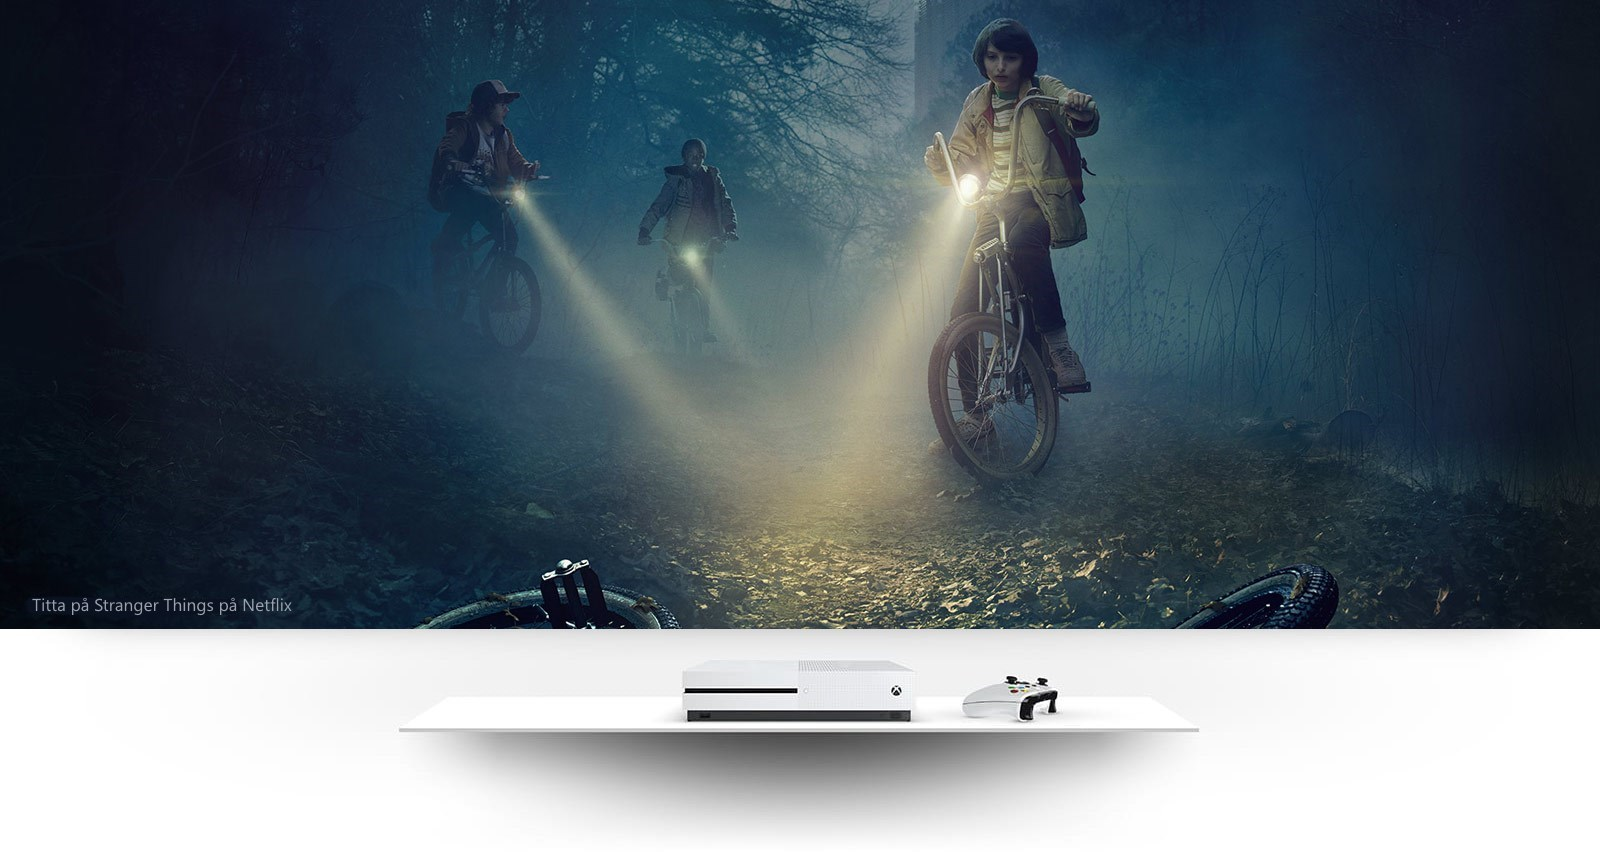 Stranger Things-barn på cyklar